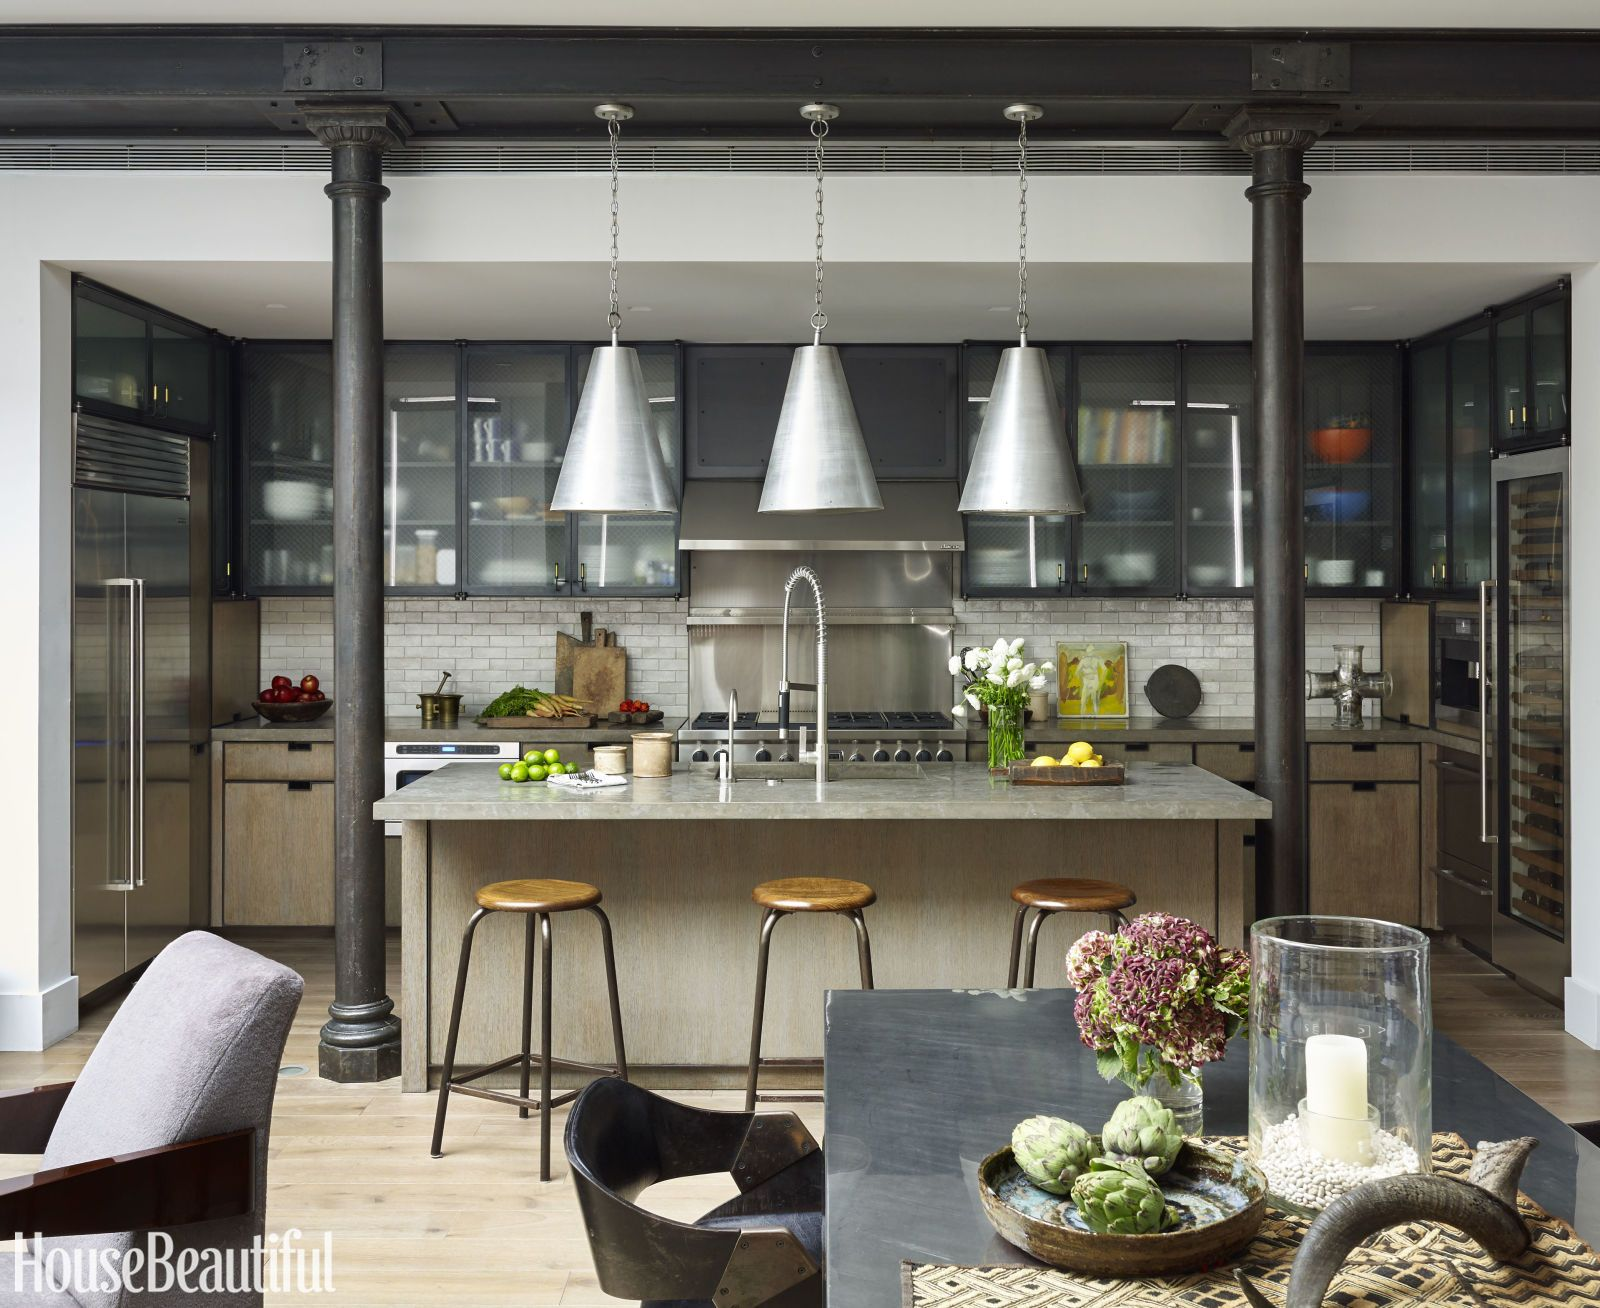 This Industrial Style Kitchen Masters Mixed Materials. House Beautiful /  Robert Stilin